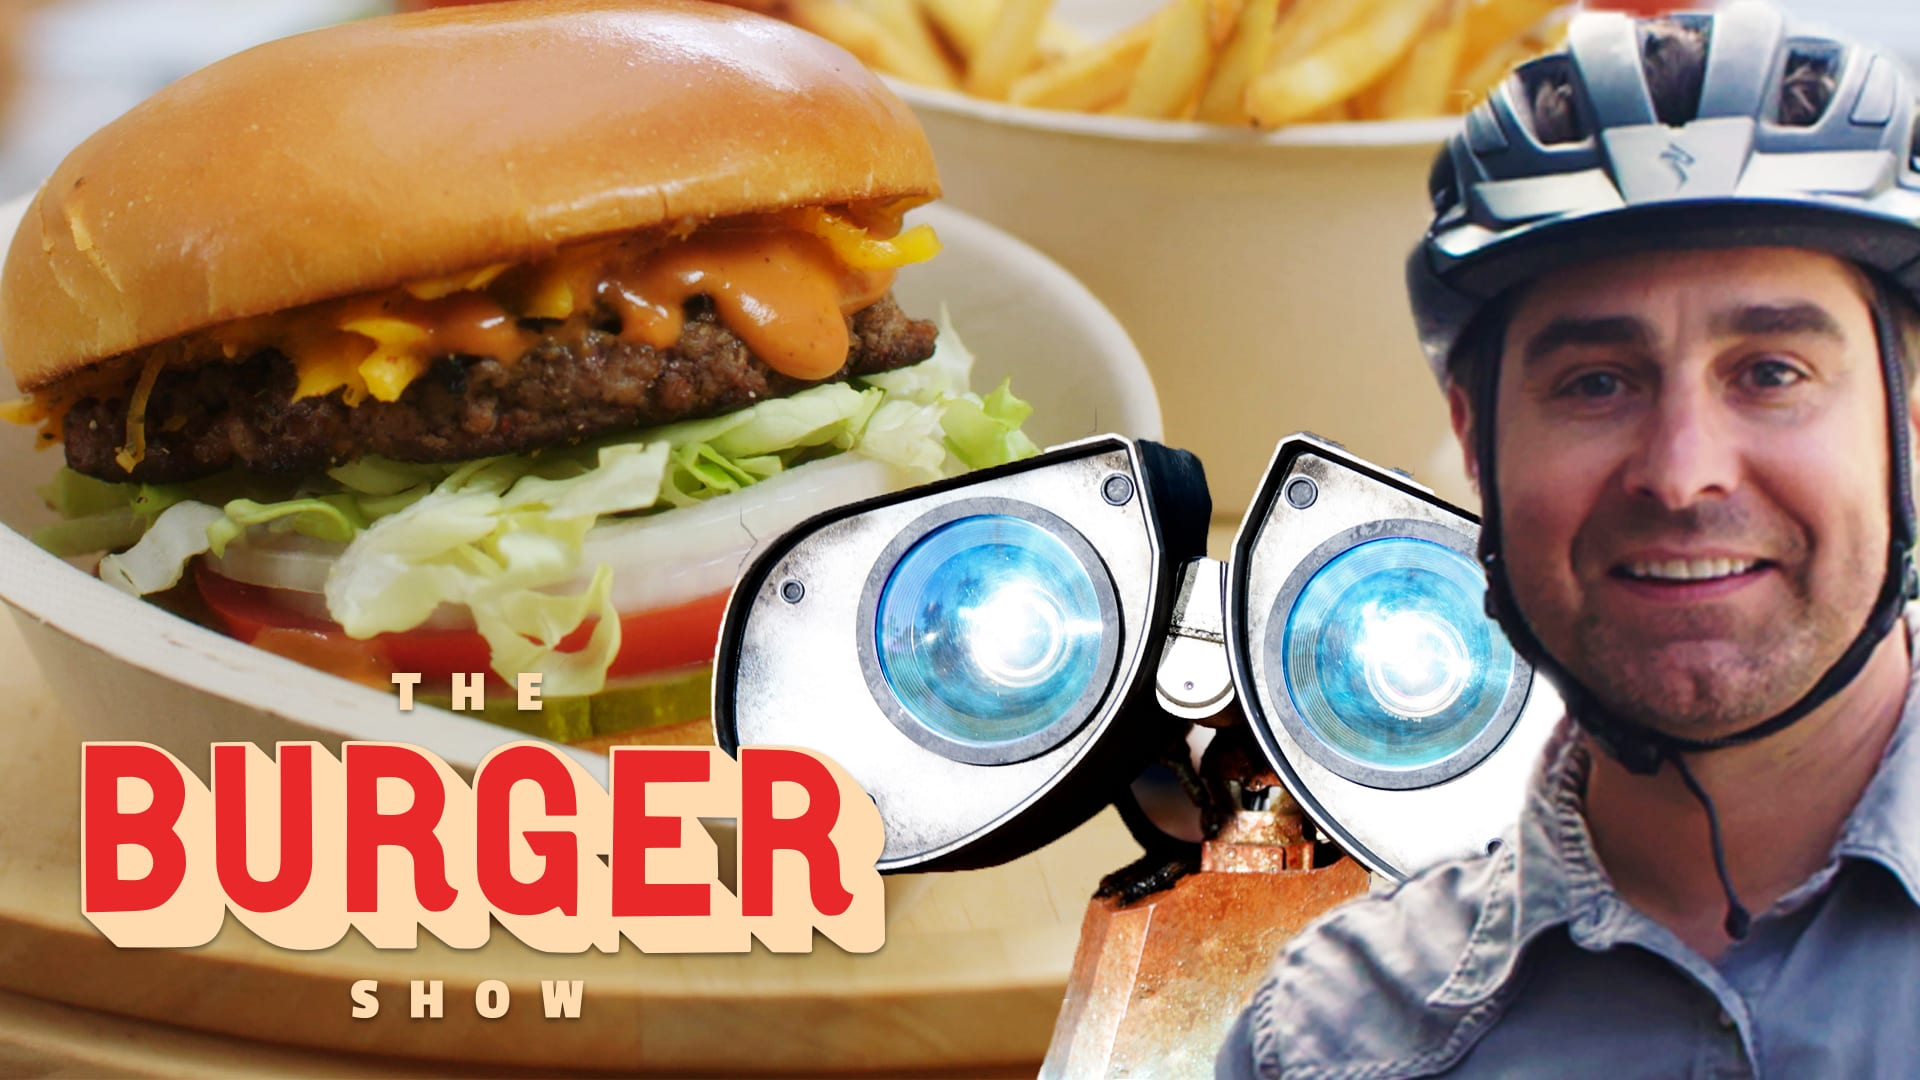 MythBusters Tory Belleci Tests a Burger Robot   The Burger Show